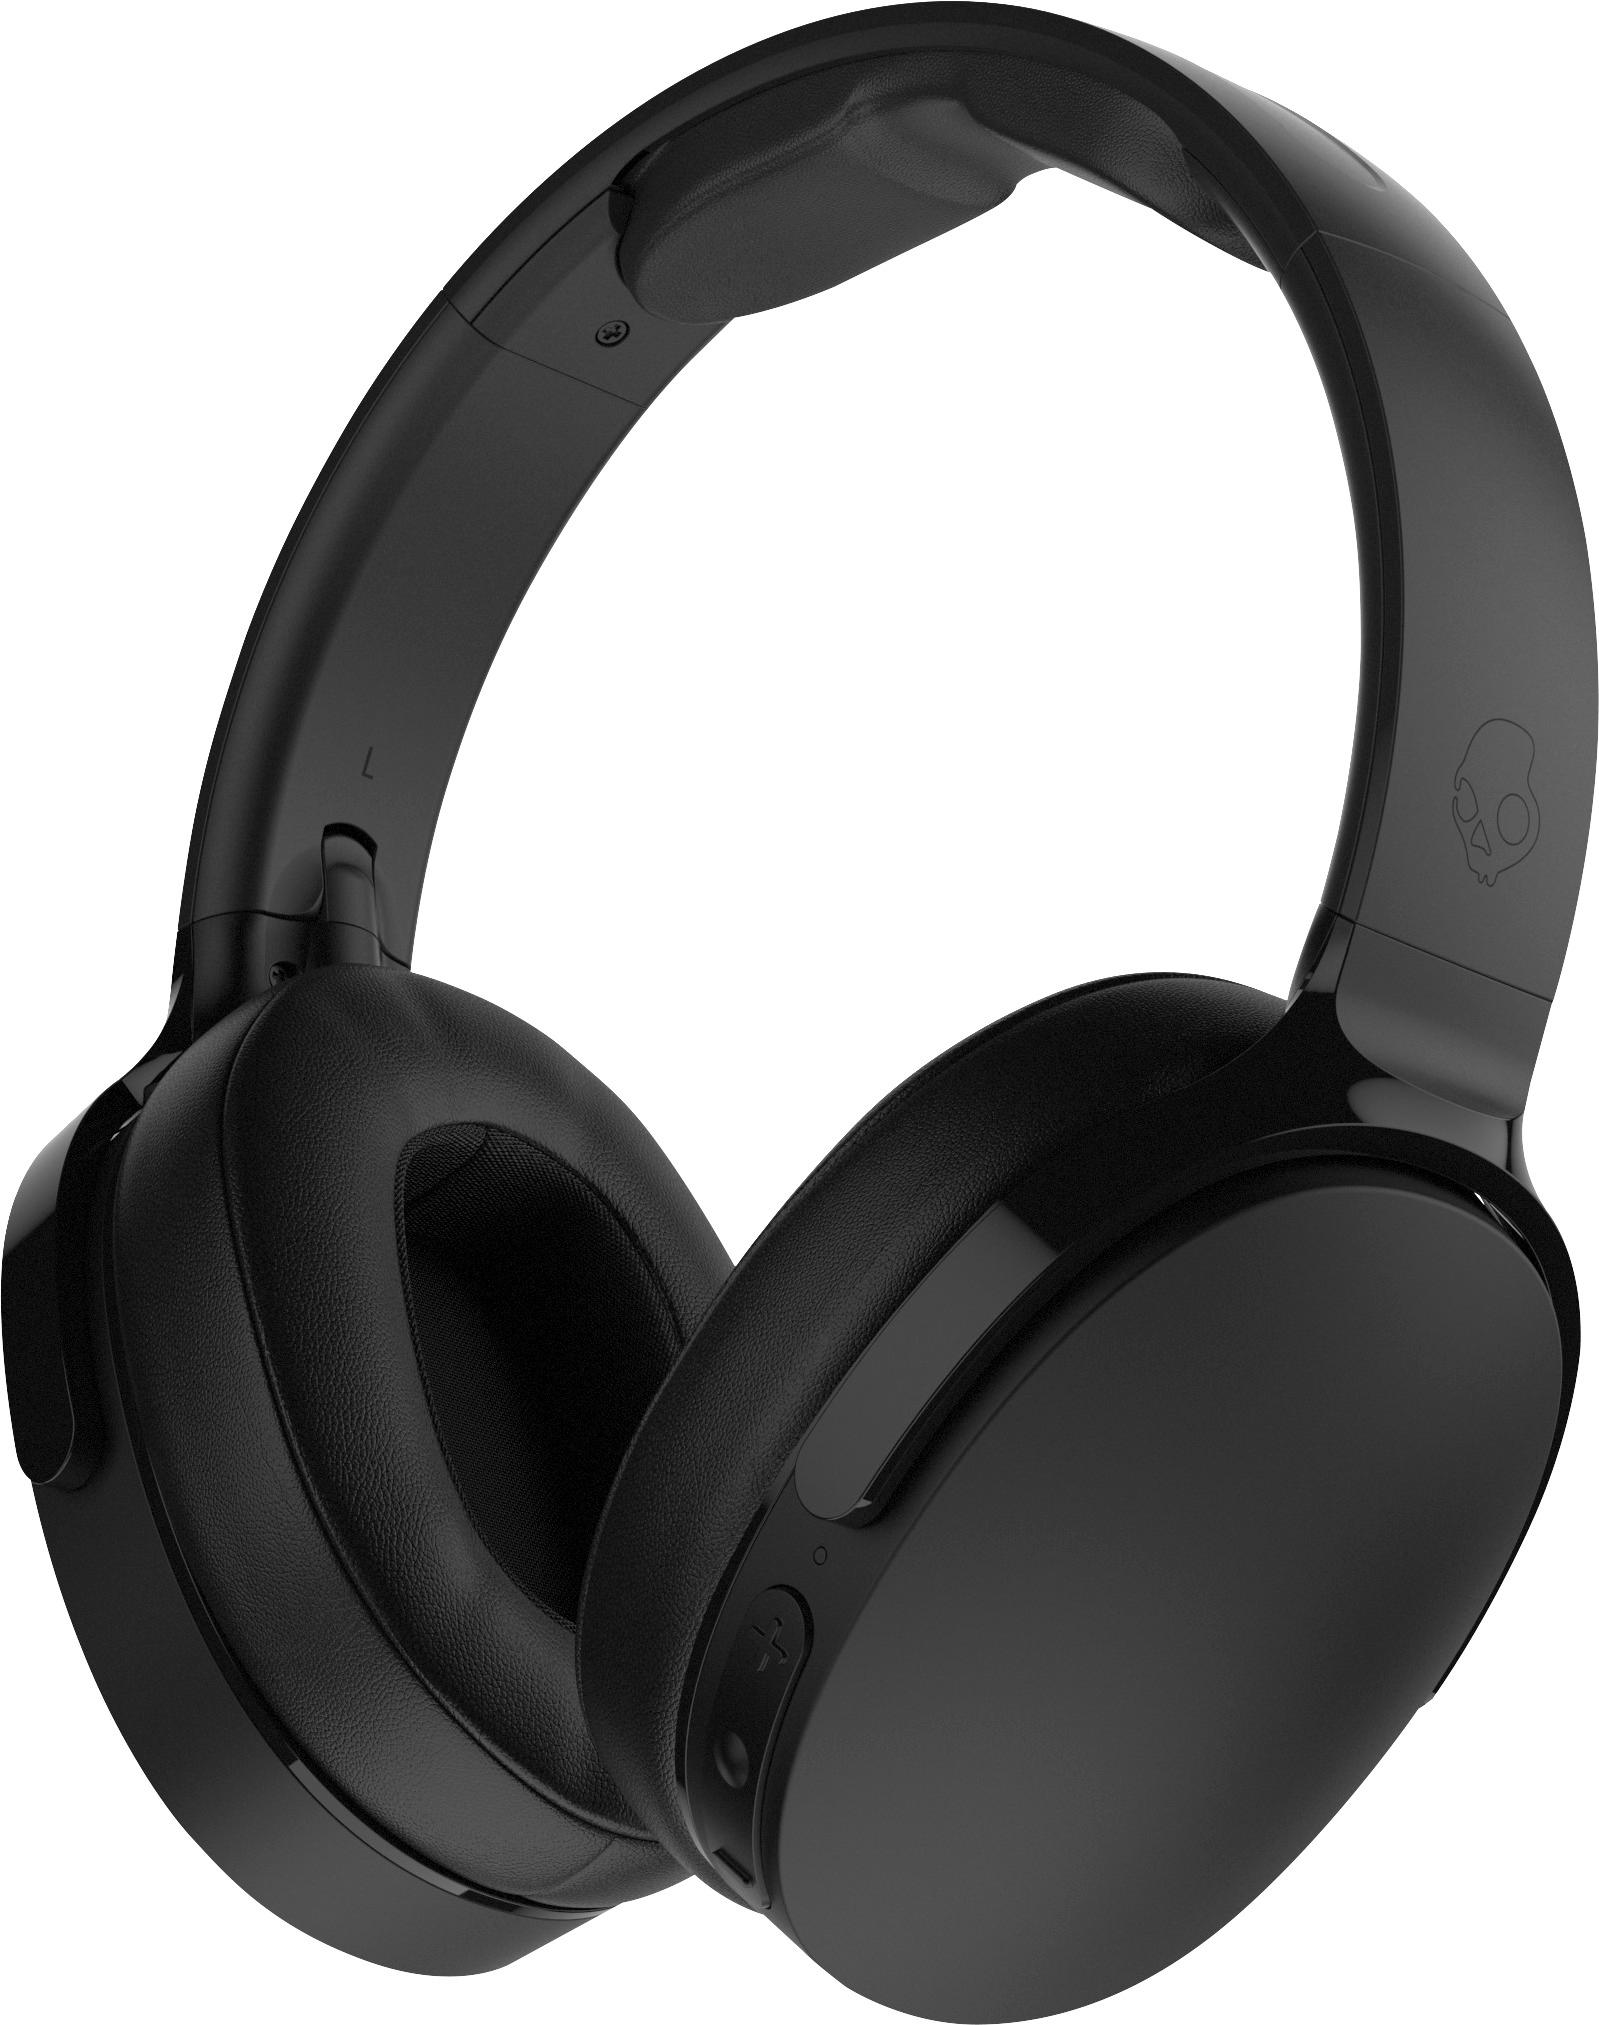 hight resolution of skullcandy hesh 3 wireless over the ear headphones black s6htw k033 best buy